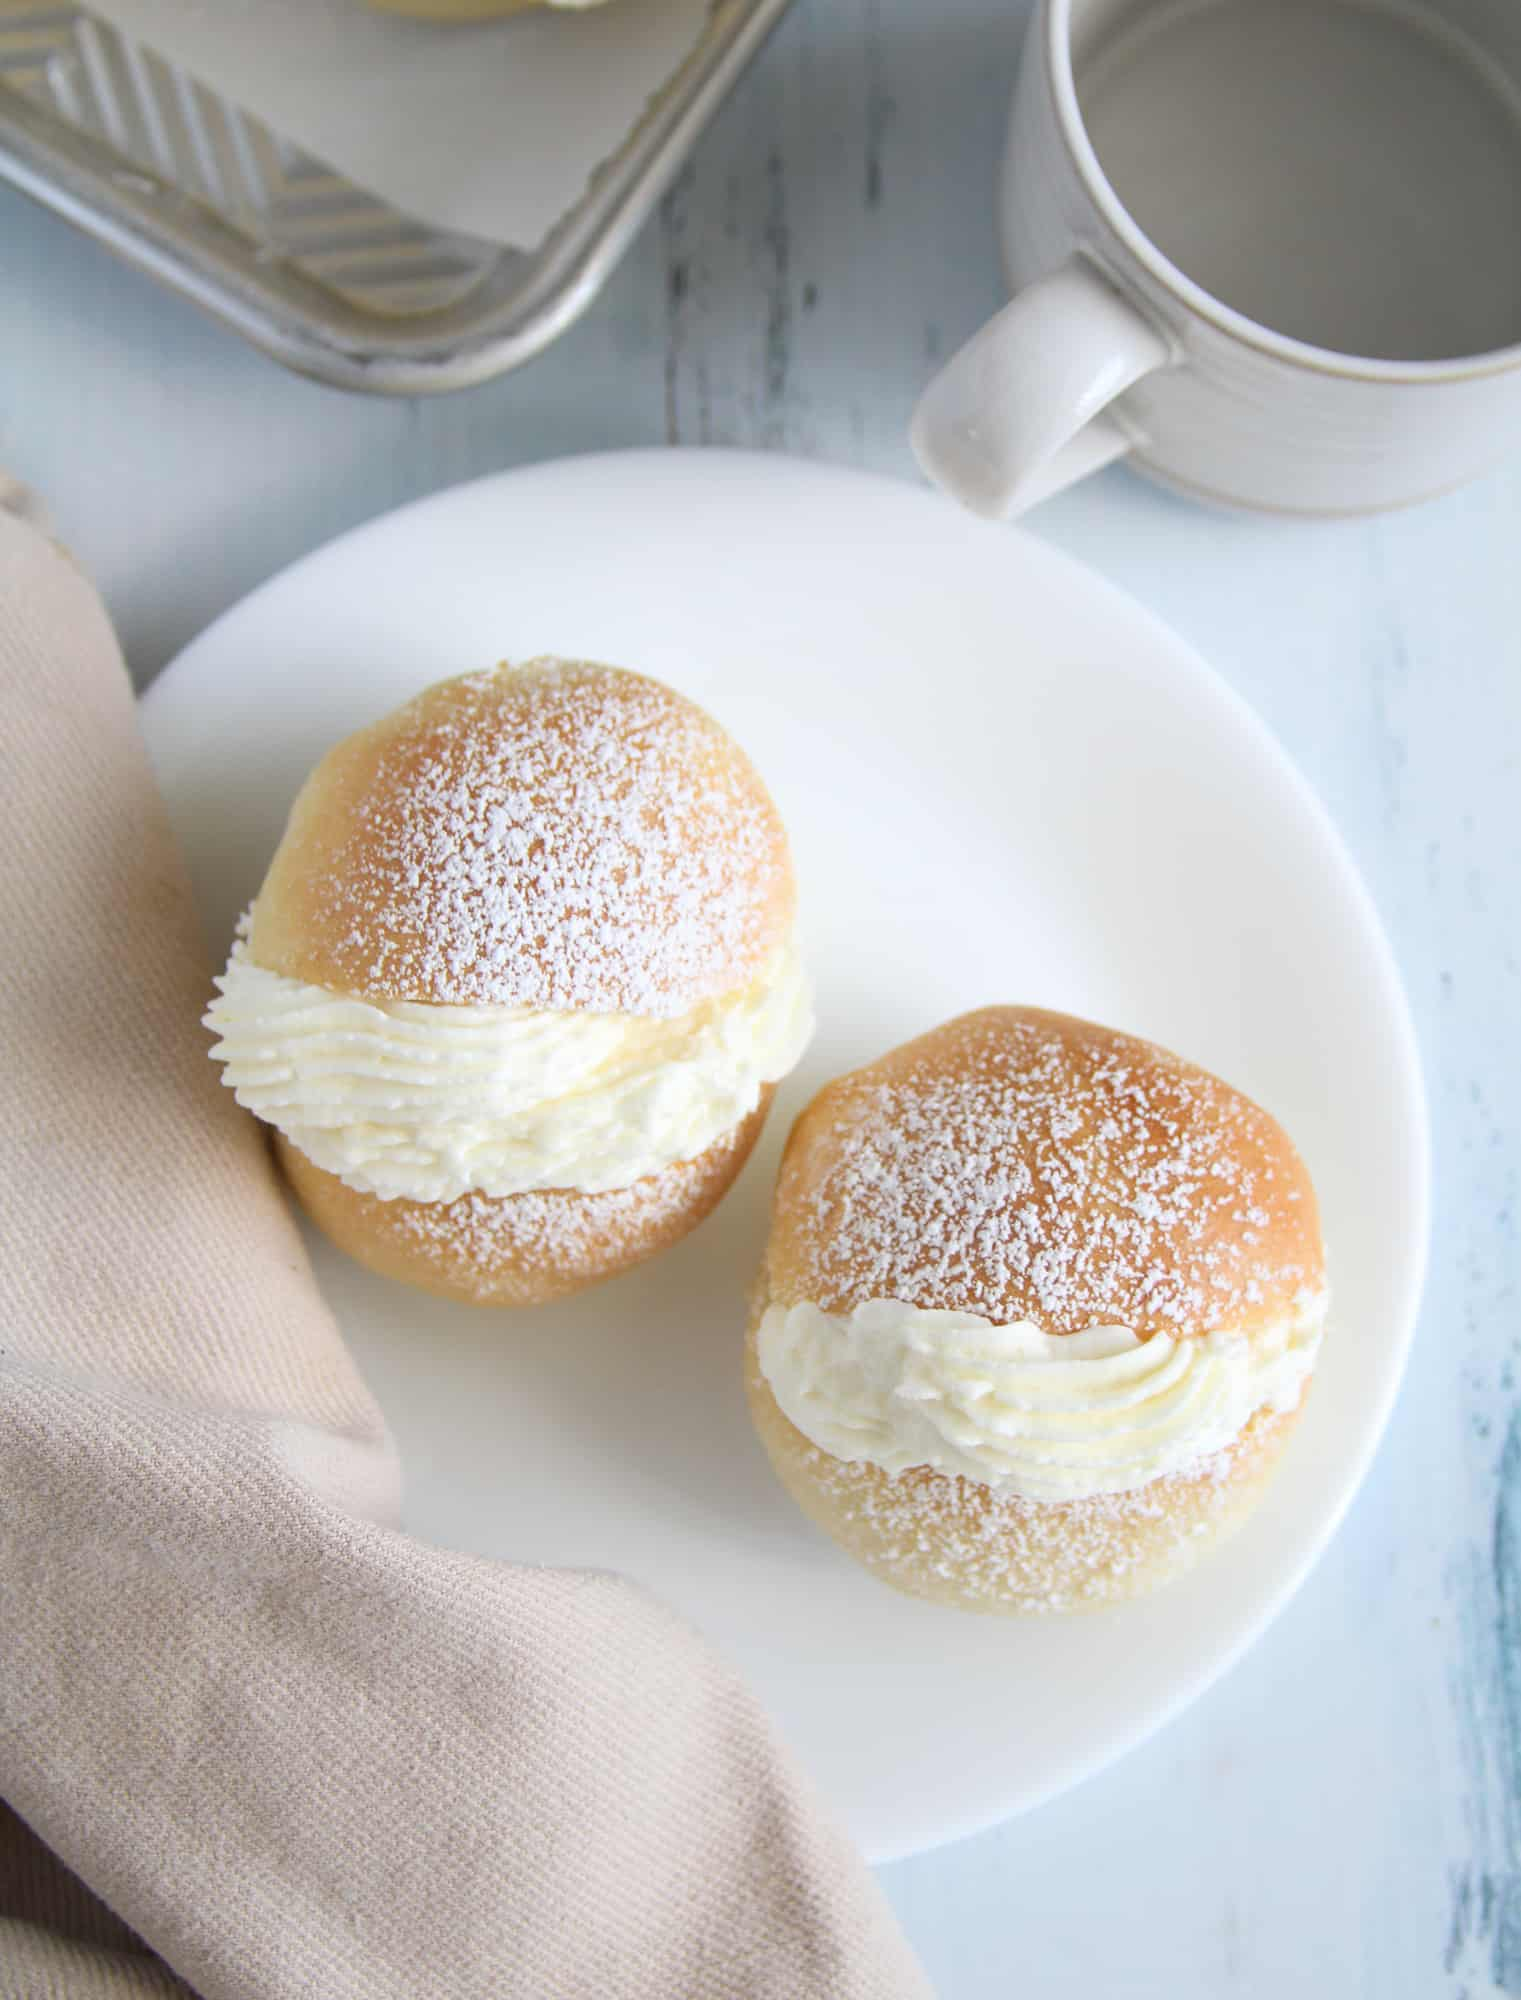 Top view of cream buns on a plate.